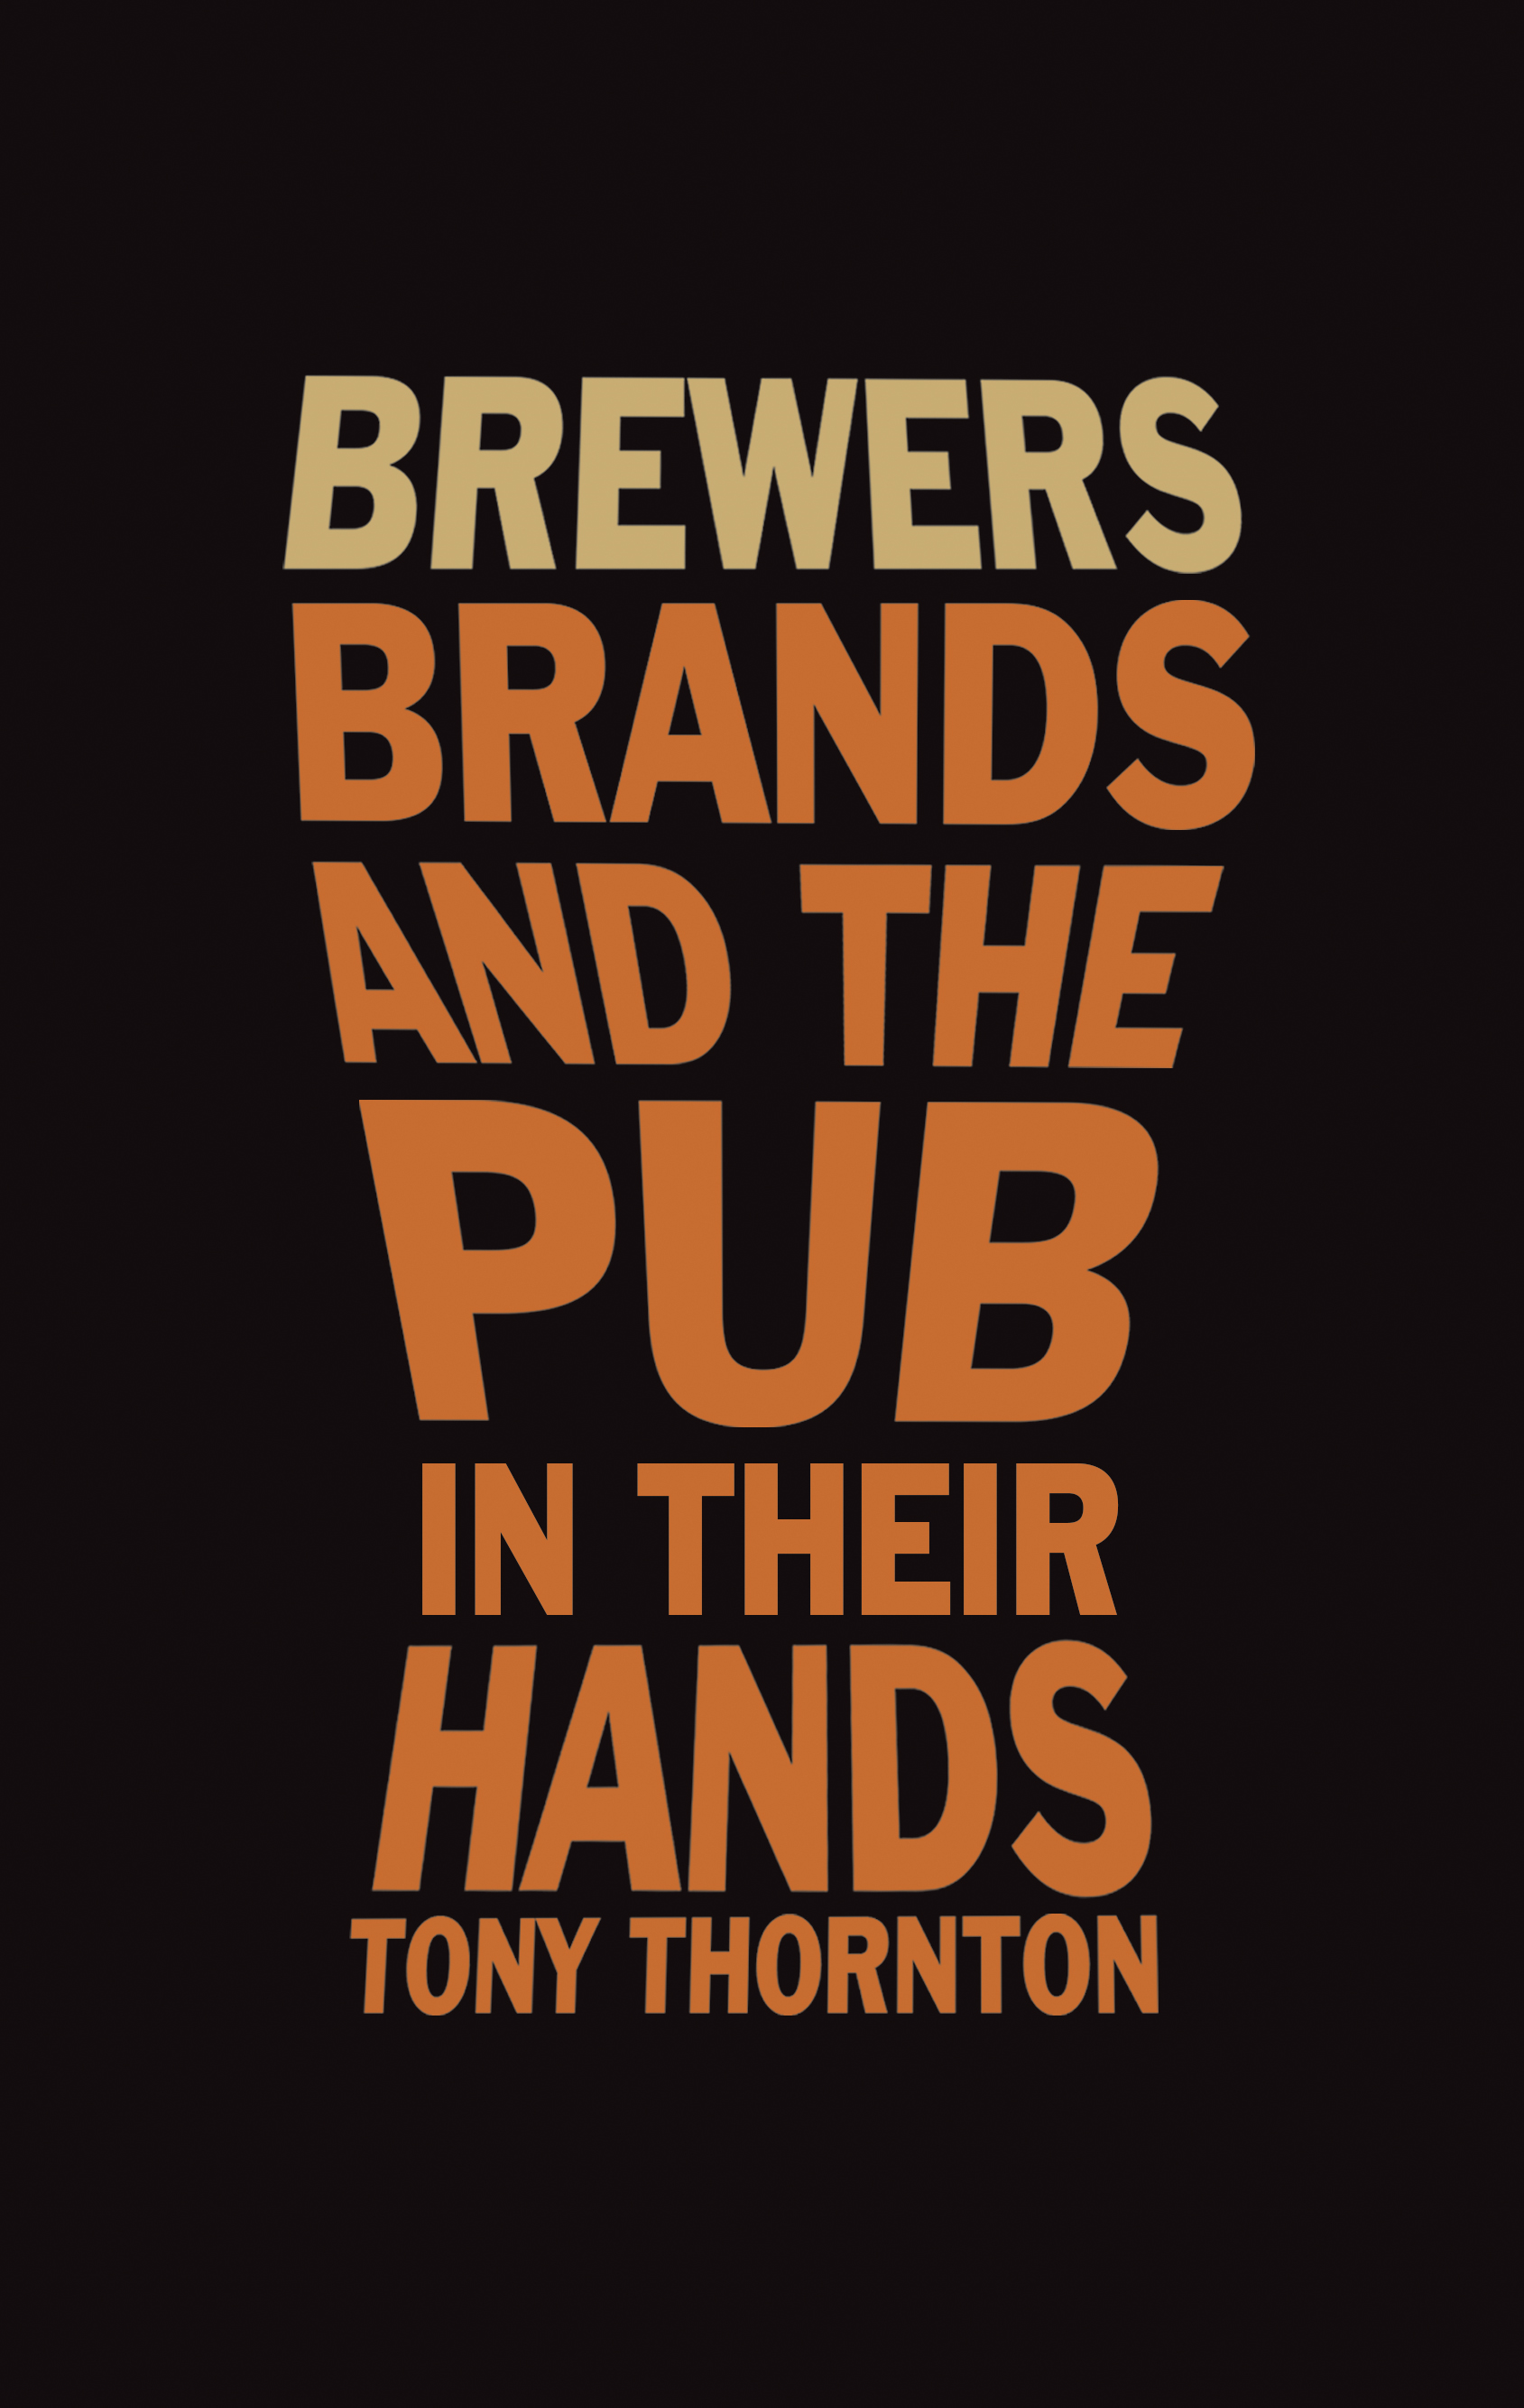 Brewers,  Brands and the pub in their hands